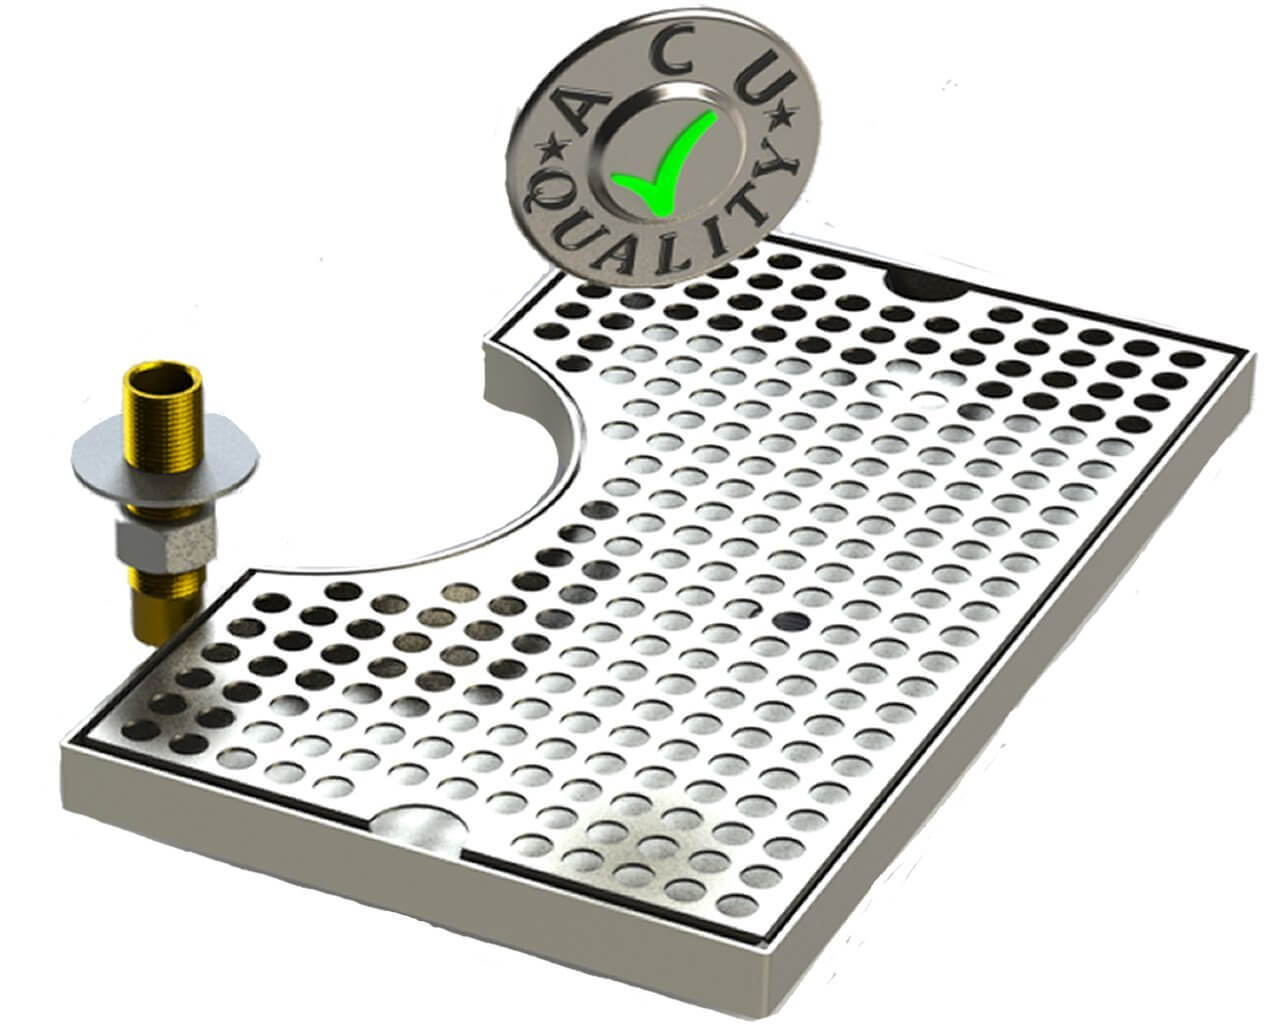 Surface Mount Beer Tray with Drain and Cutout for beer tower